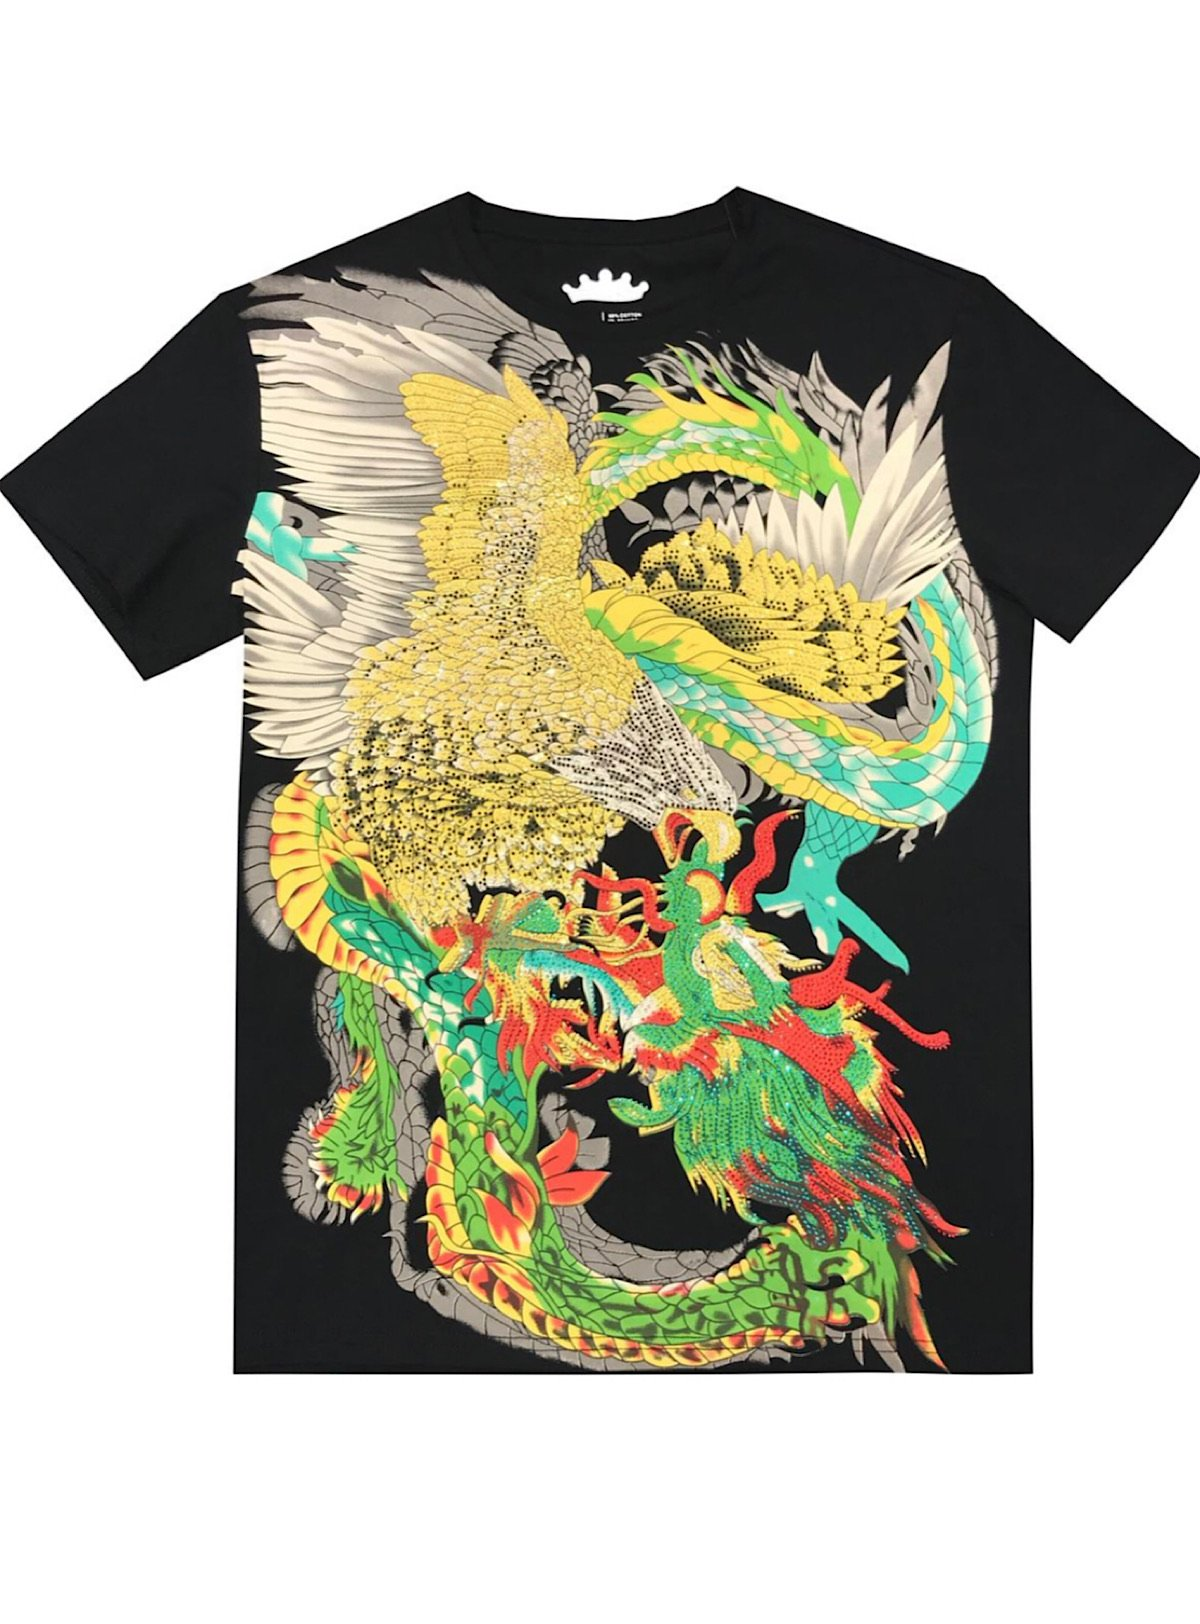 Heads Or Tails T-Shirt - Dragon - Black - 29129